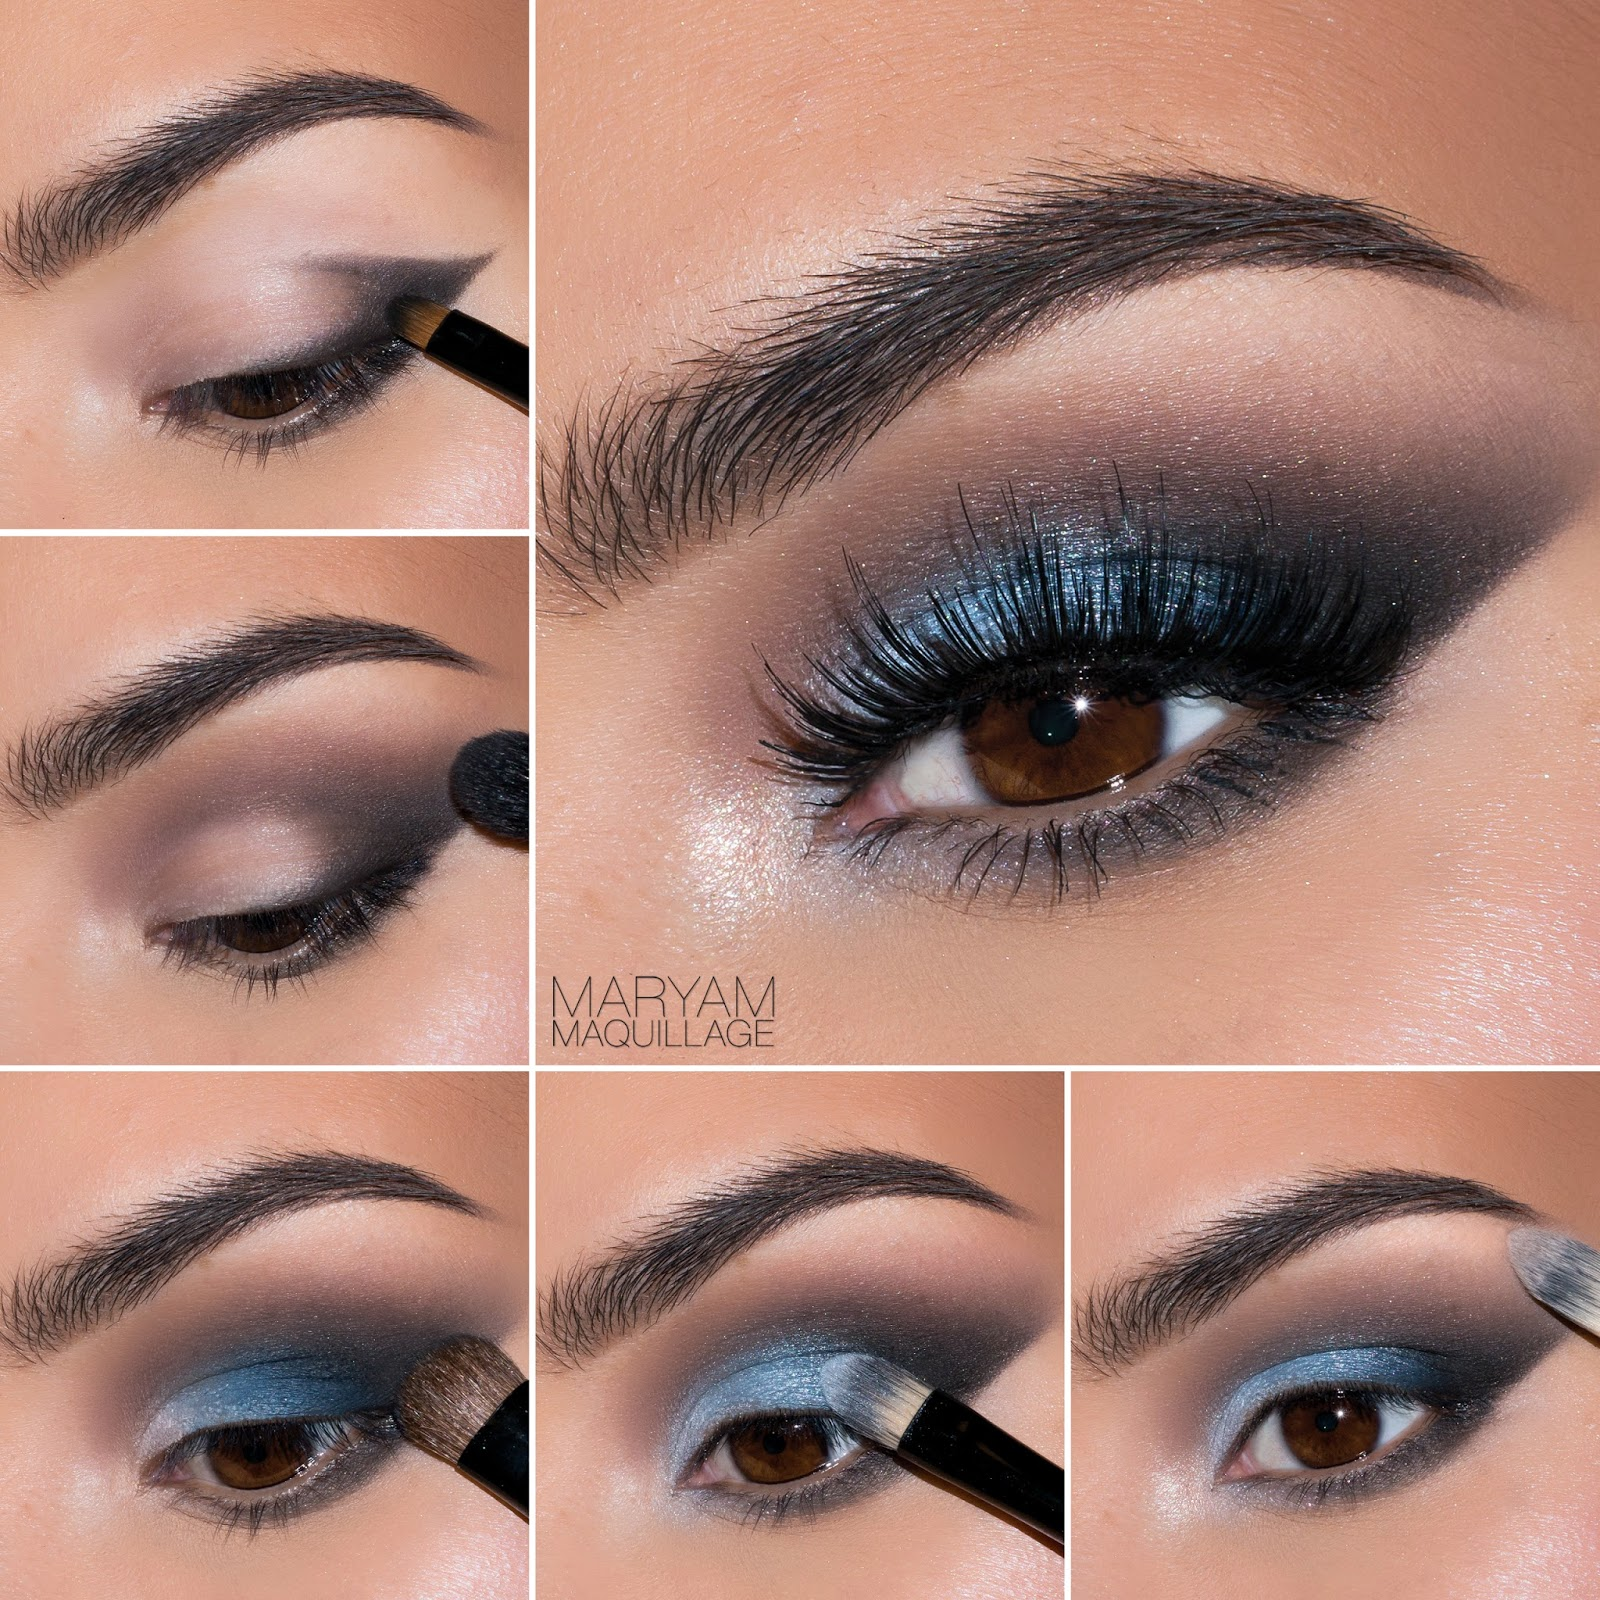 15 Great Makeup Tutorials For A Night Out